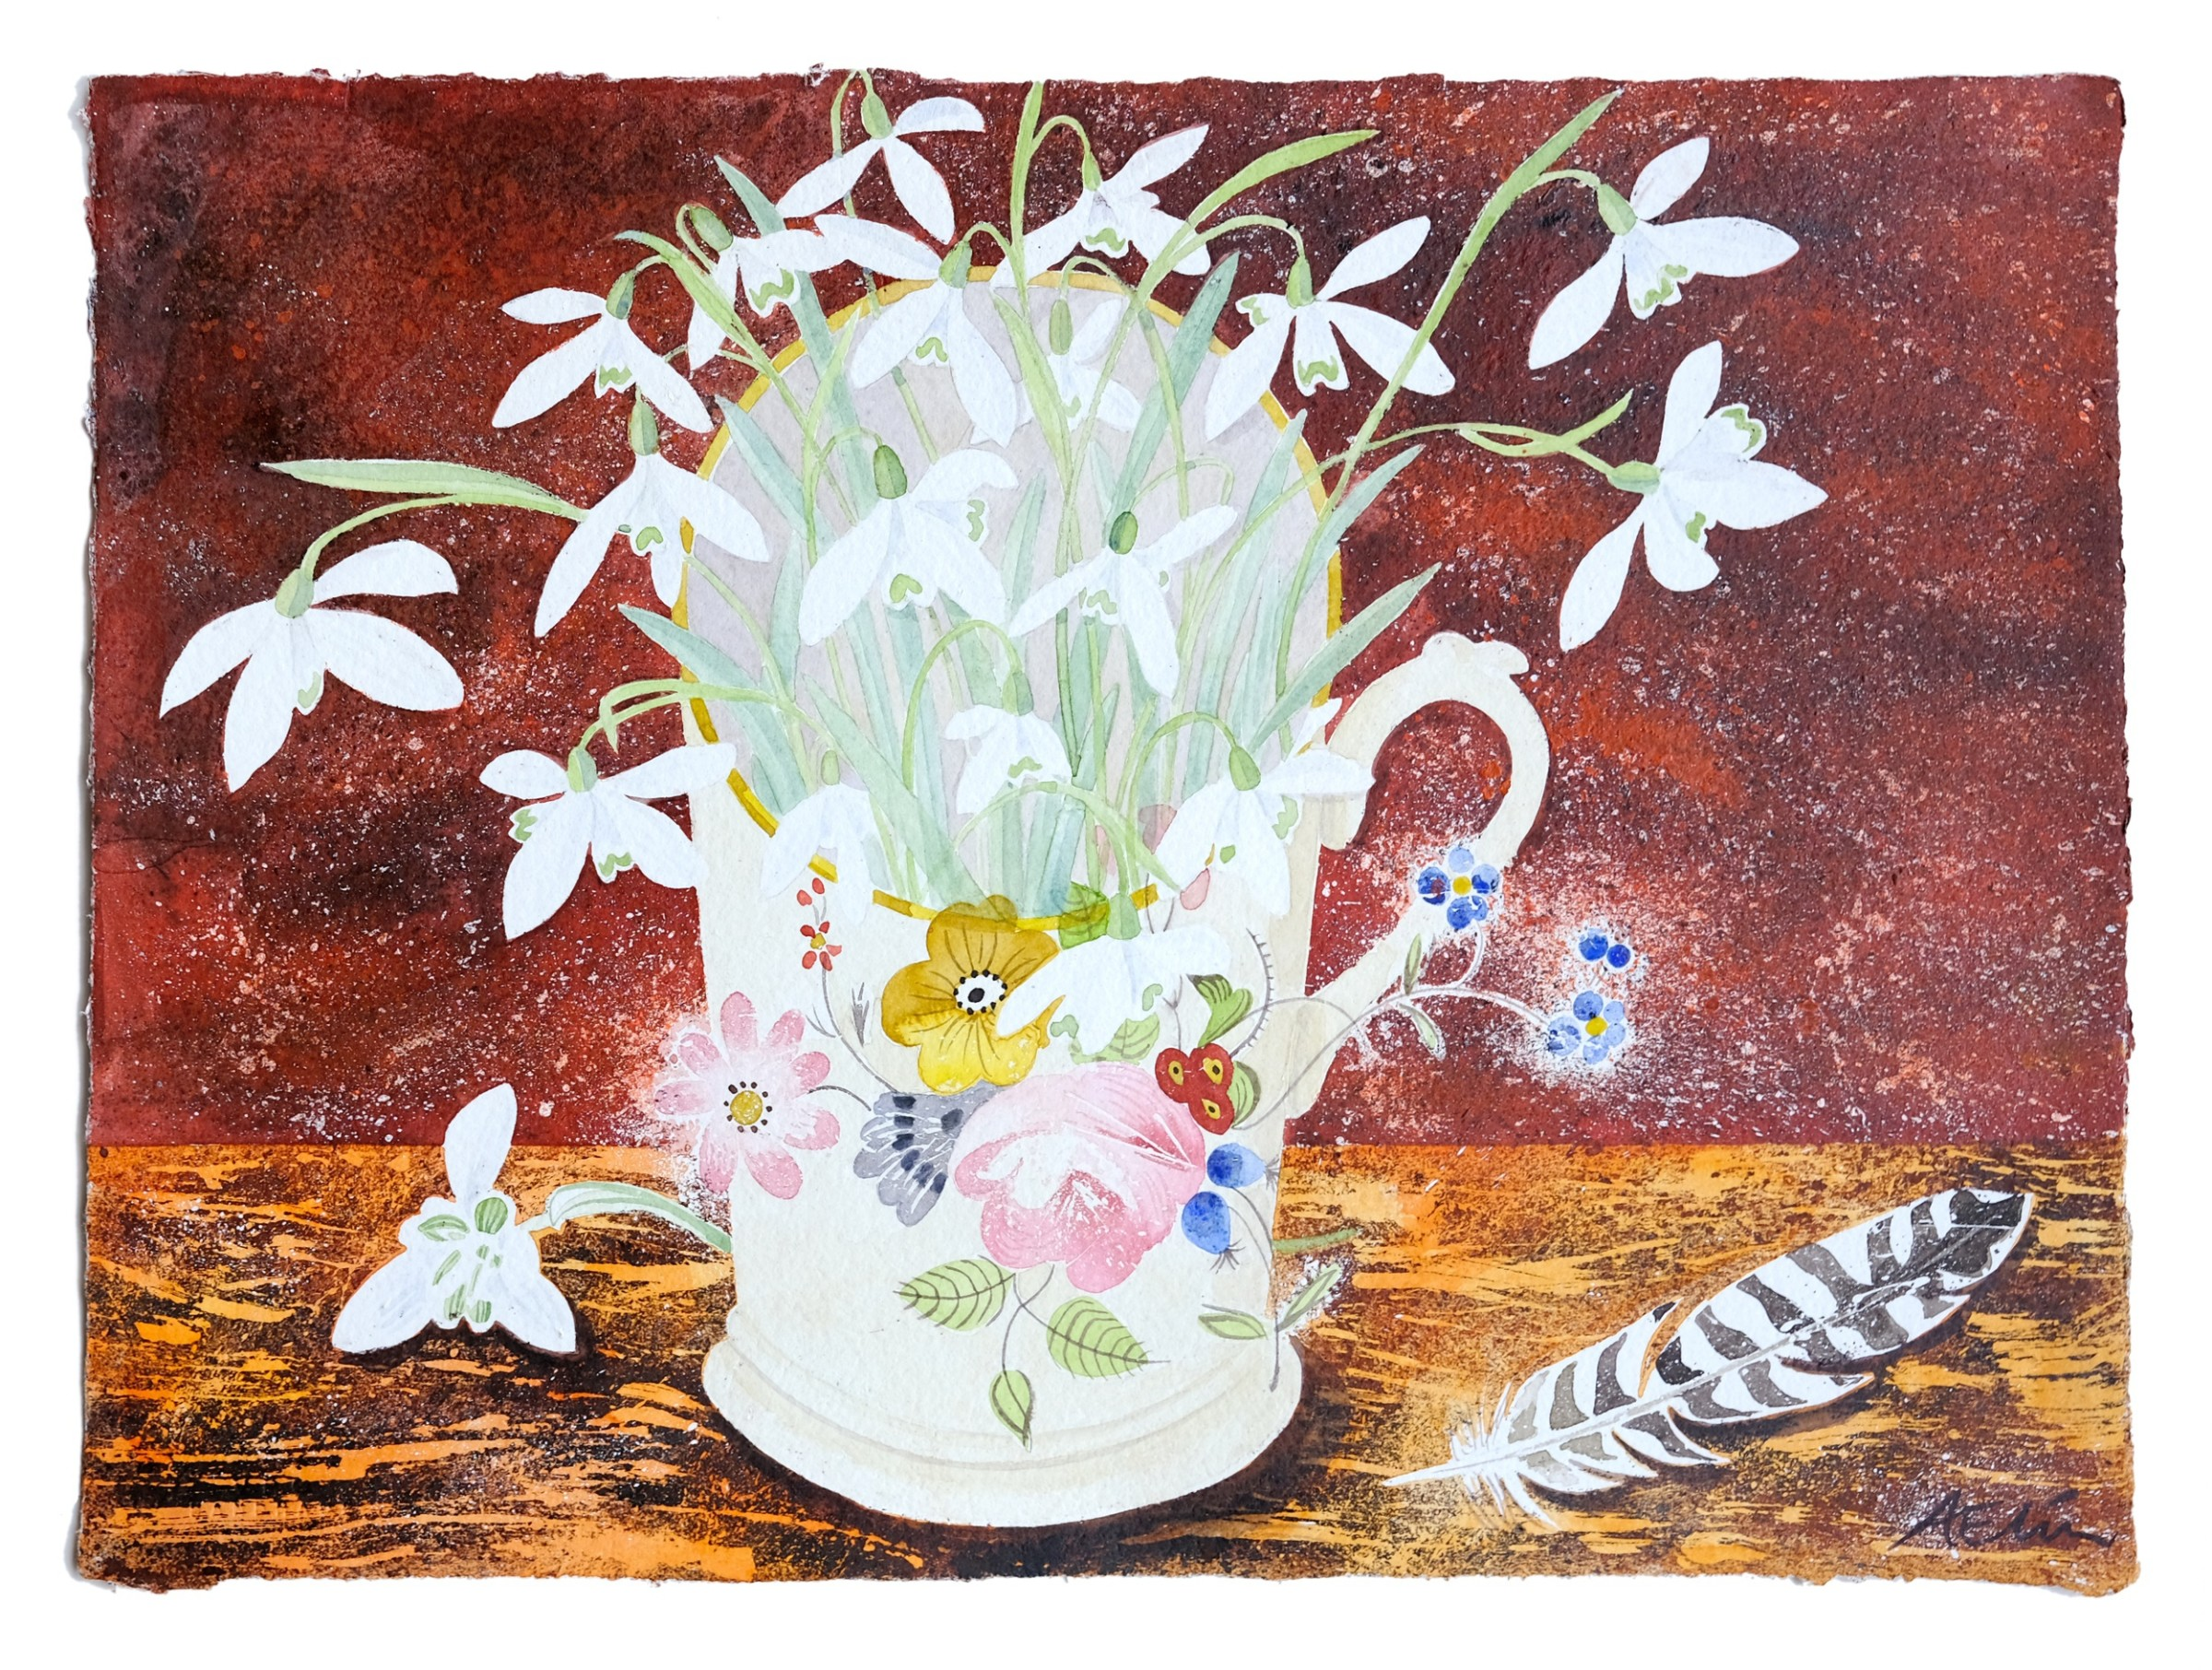 """<span class=""""link fancybox-details-link""""><a href=""""/artists/129-angie-lewin/works/12692-angie-lewin-snowdrops-in-floral-cup/"""">View Detail Page</a></span><div class=""""artist""""><span class=""""artist""""><strong>Angie Lewin</strong></span></div><div class=""""title""""><em>Snowdrops in Floral Cup</em></div><div class=""""medium"""">watercolour</div><div class=""""dimensions"""">Artwork: 38 x 28cm</div><div class=""""price"""">£825.00</div>"""